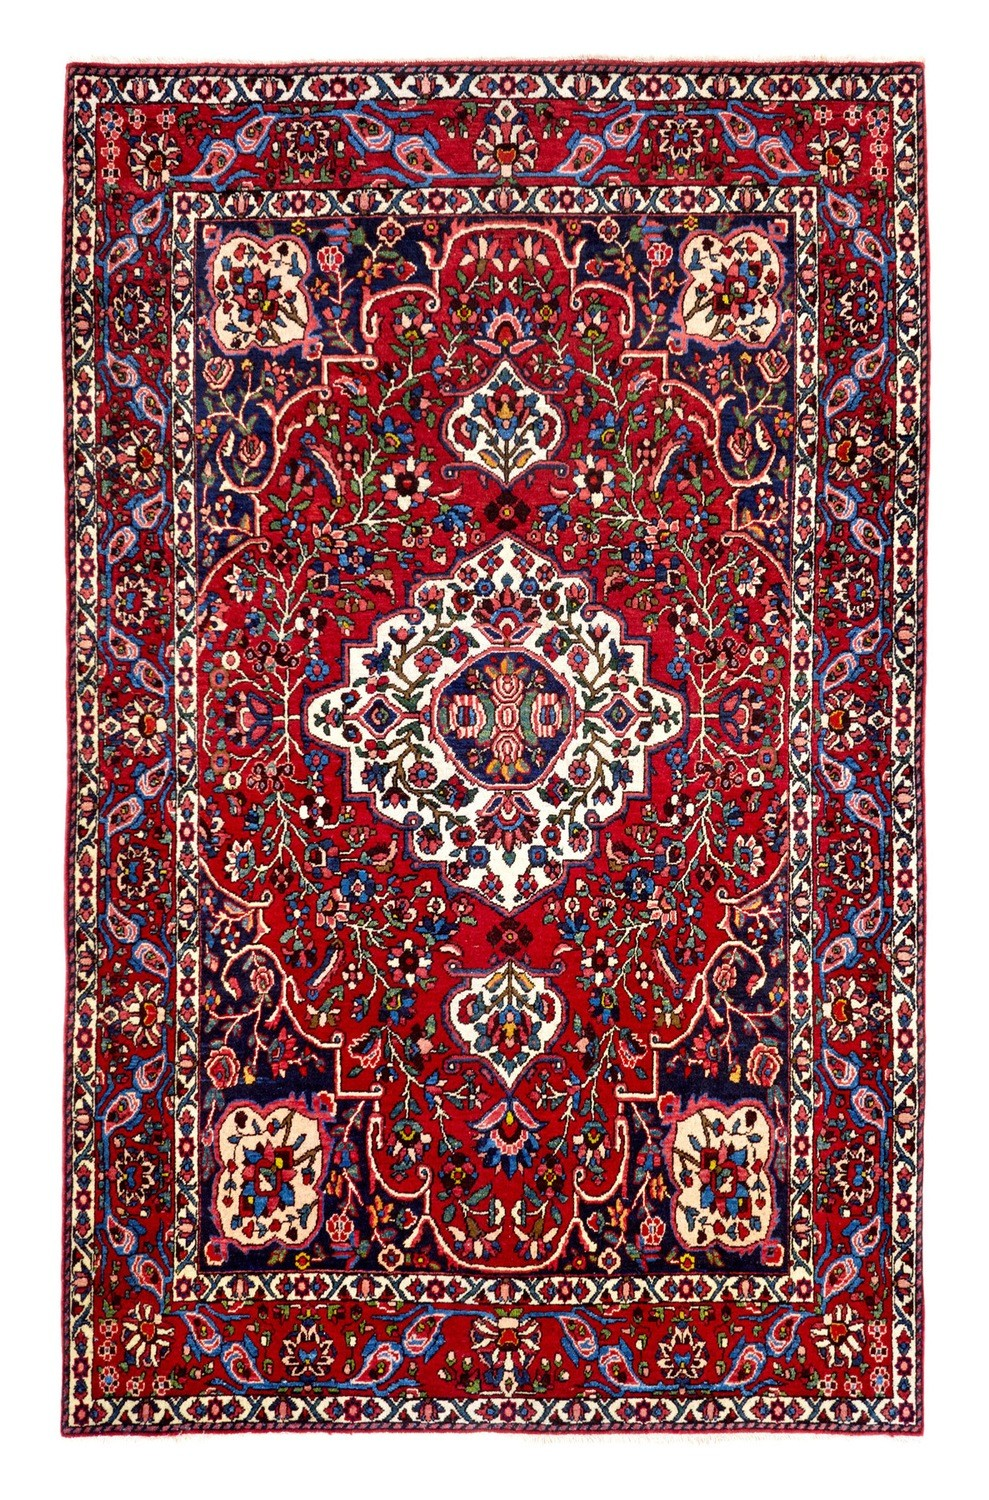 Old Bakhtiari rug size 2.06 x 1.47 Final Reduction